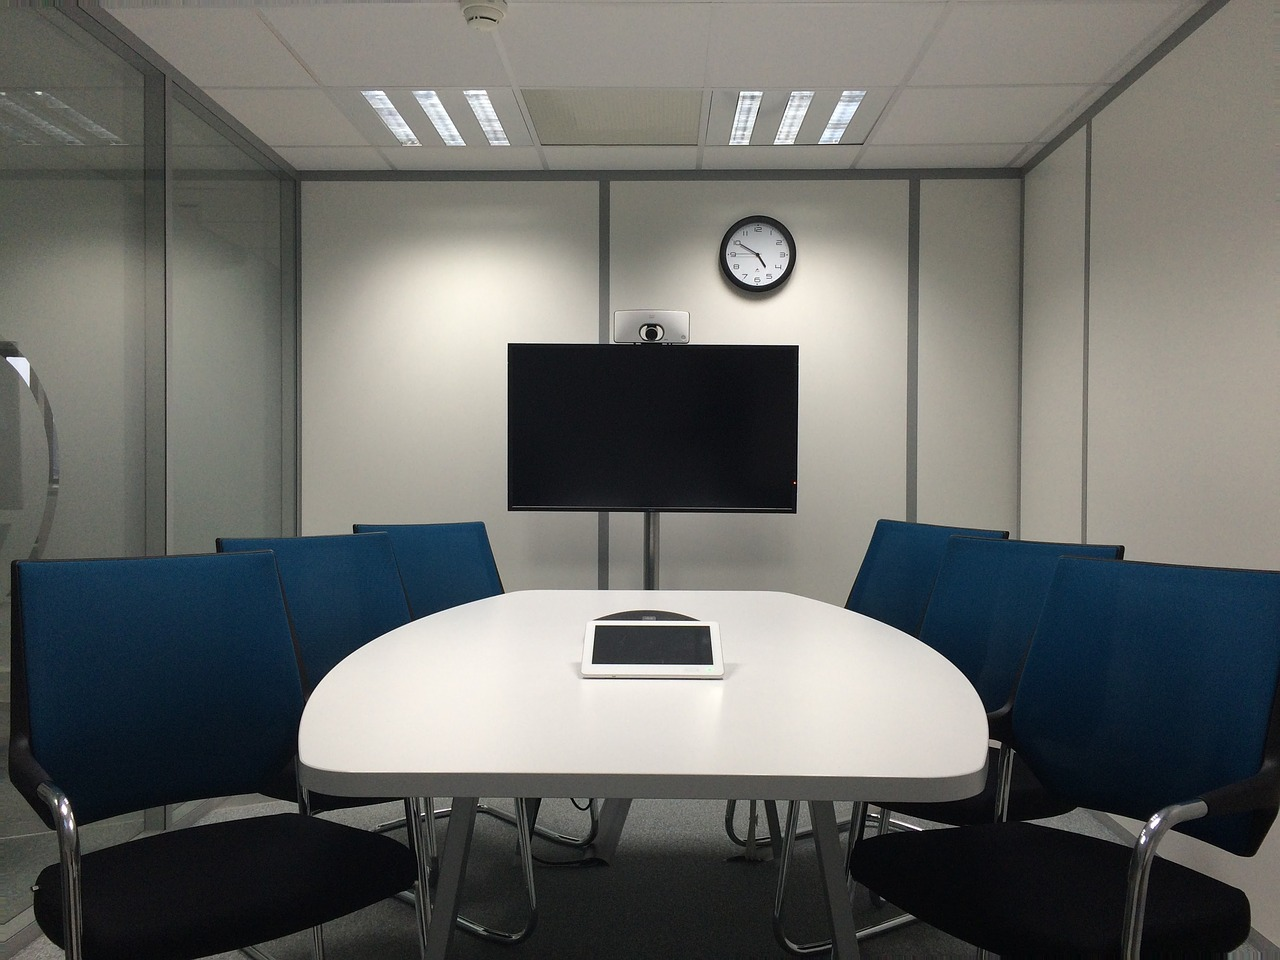 meeting room table business free photo